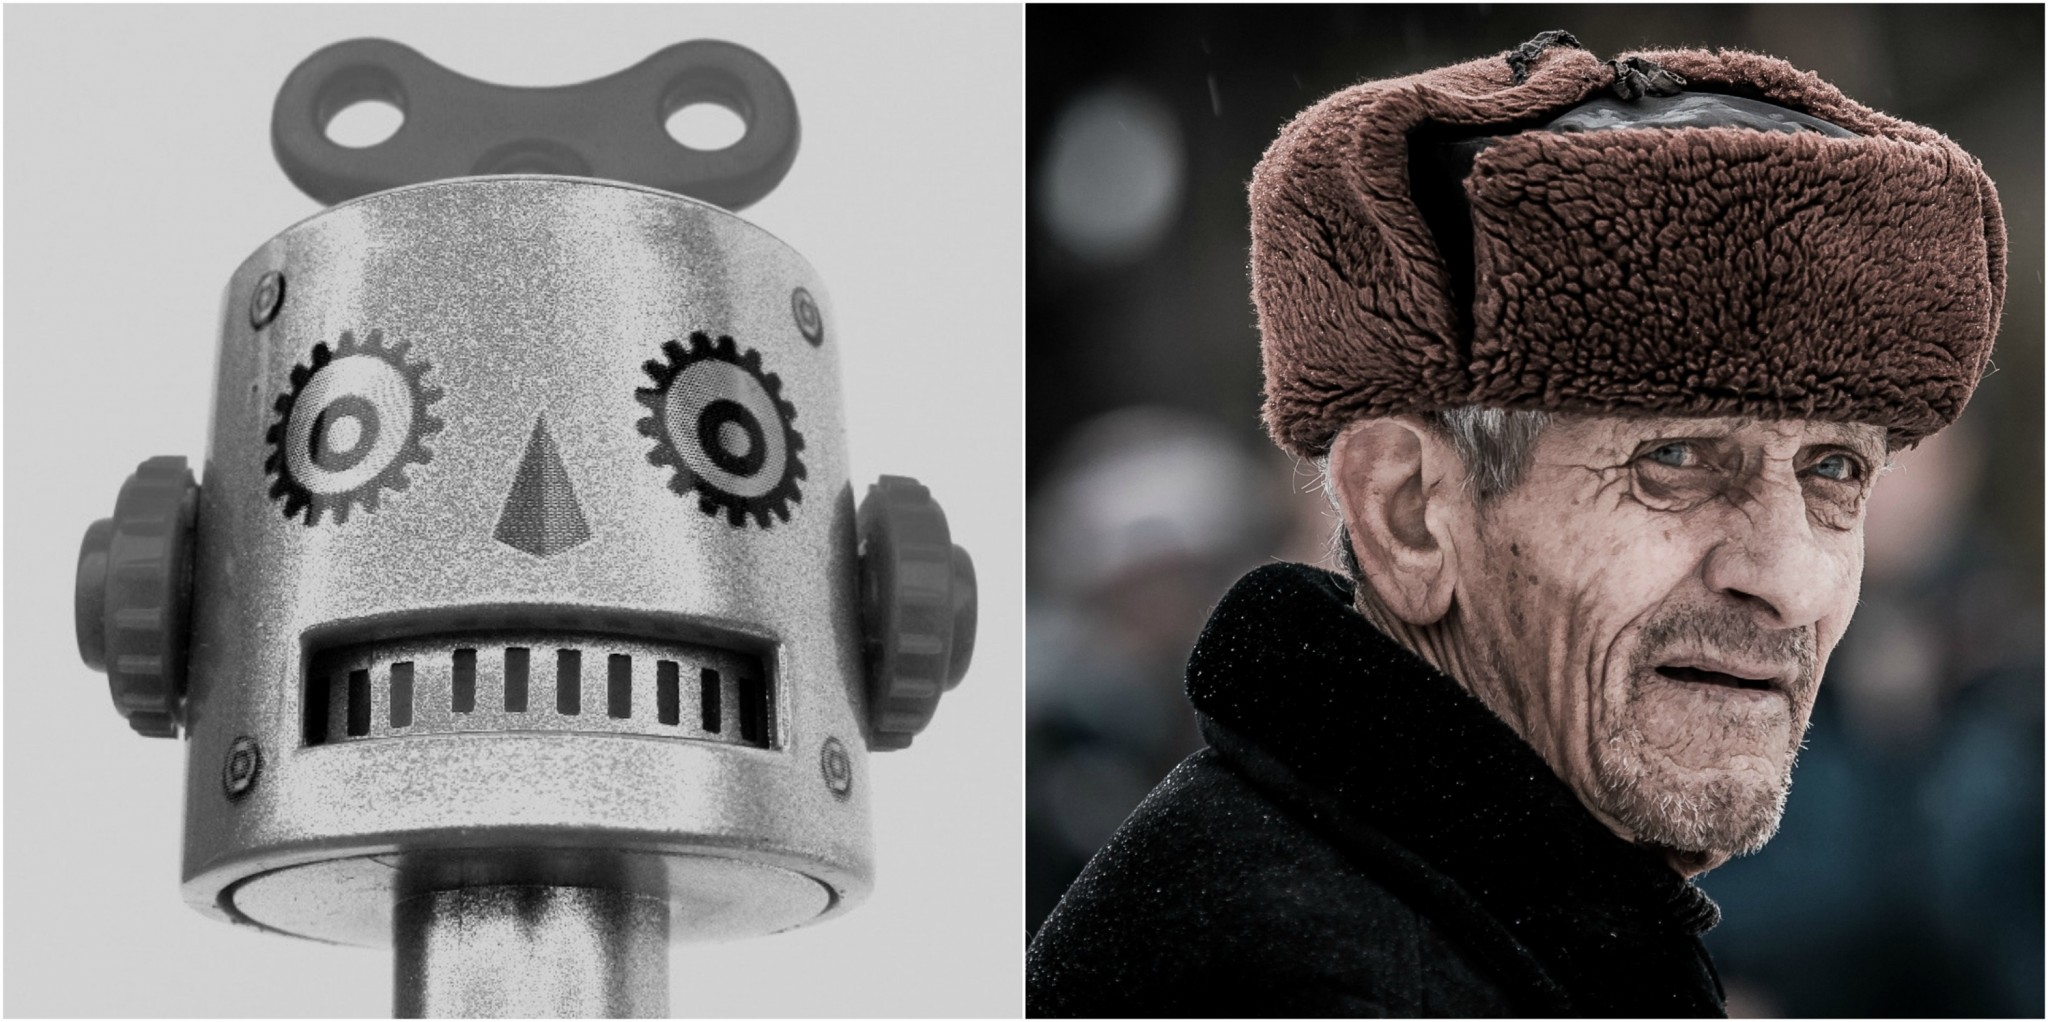 Robots could revolutionize the world of eldercare. Photos: Public domain.